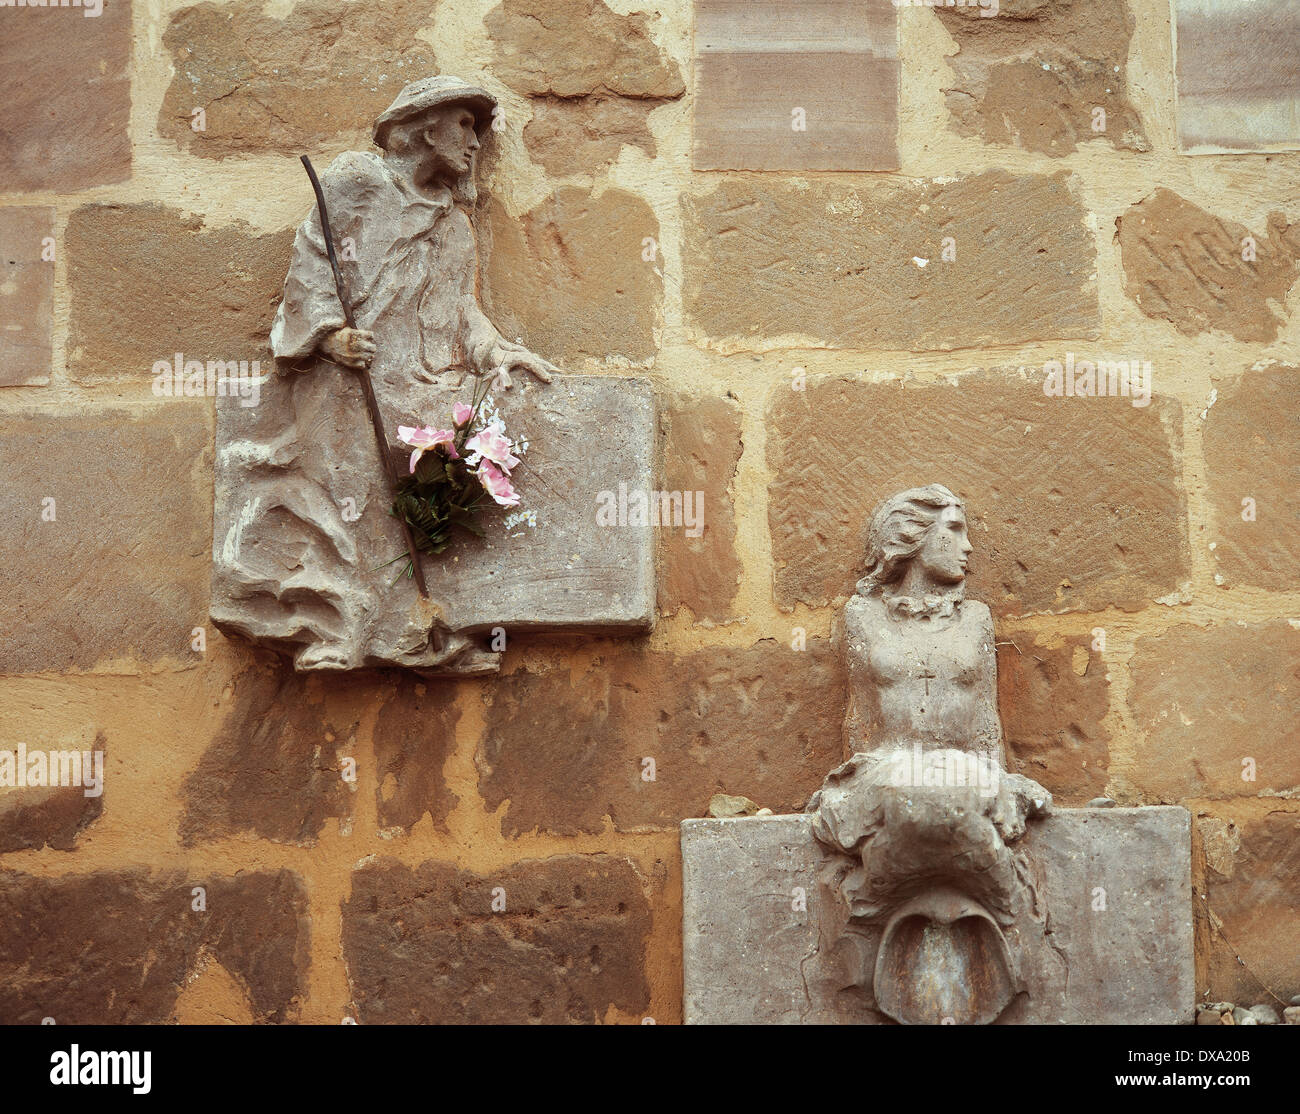 Chapel of St. Mary of Good Success. 16th-17th centuries. Reliefs on the facade in reference to the pilgrimage route. - Stock Image